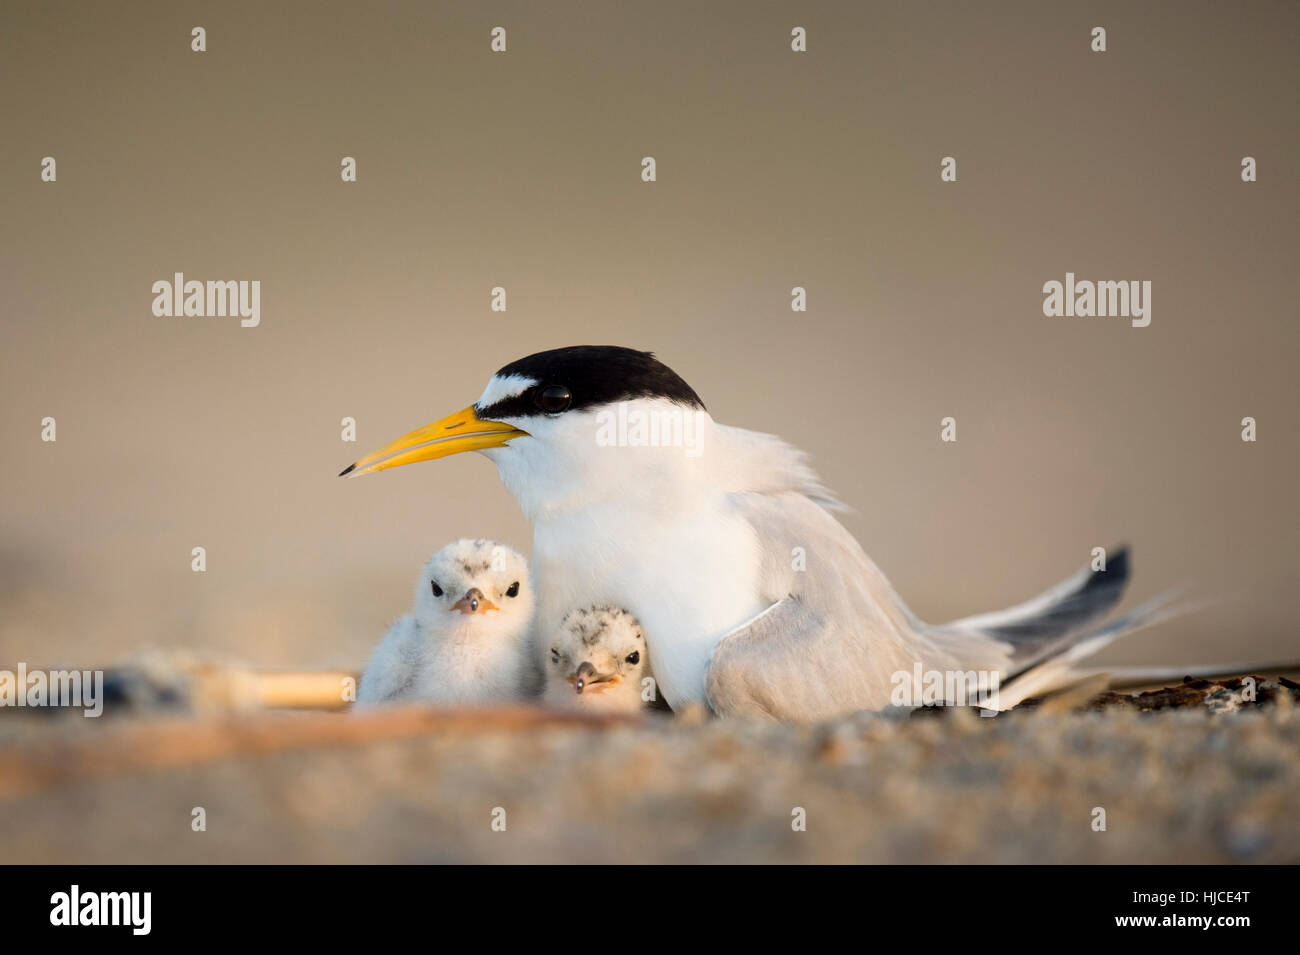 A pair of Least Tern chicks huddle in under their parent on the nest on a sandy beach early in the morning. - Stock Image